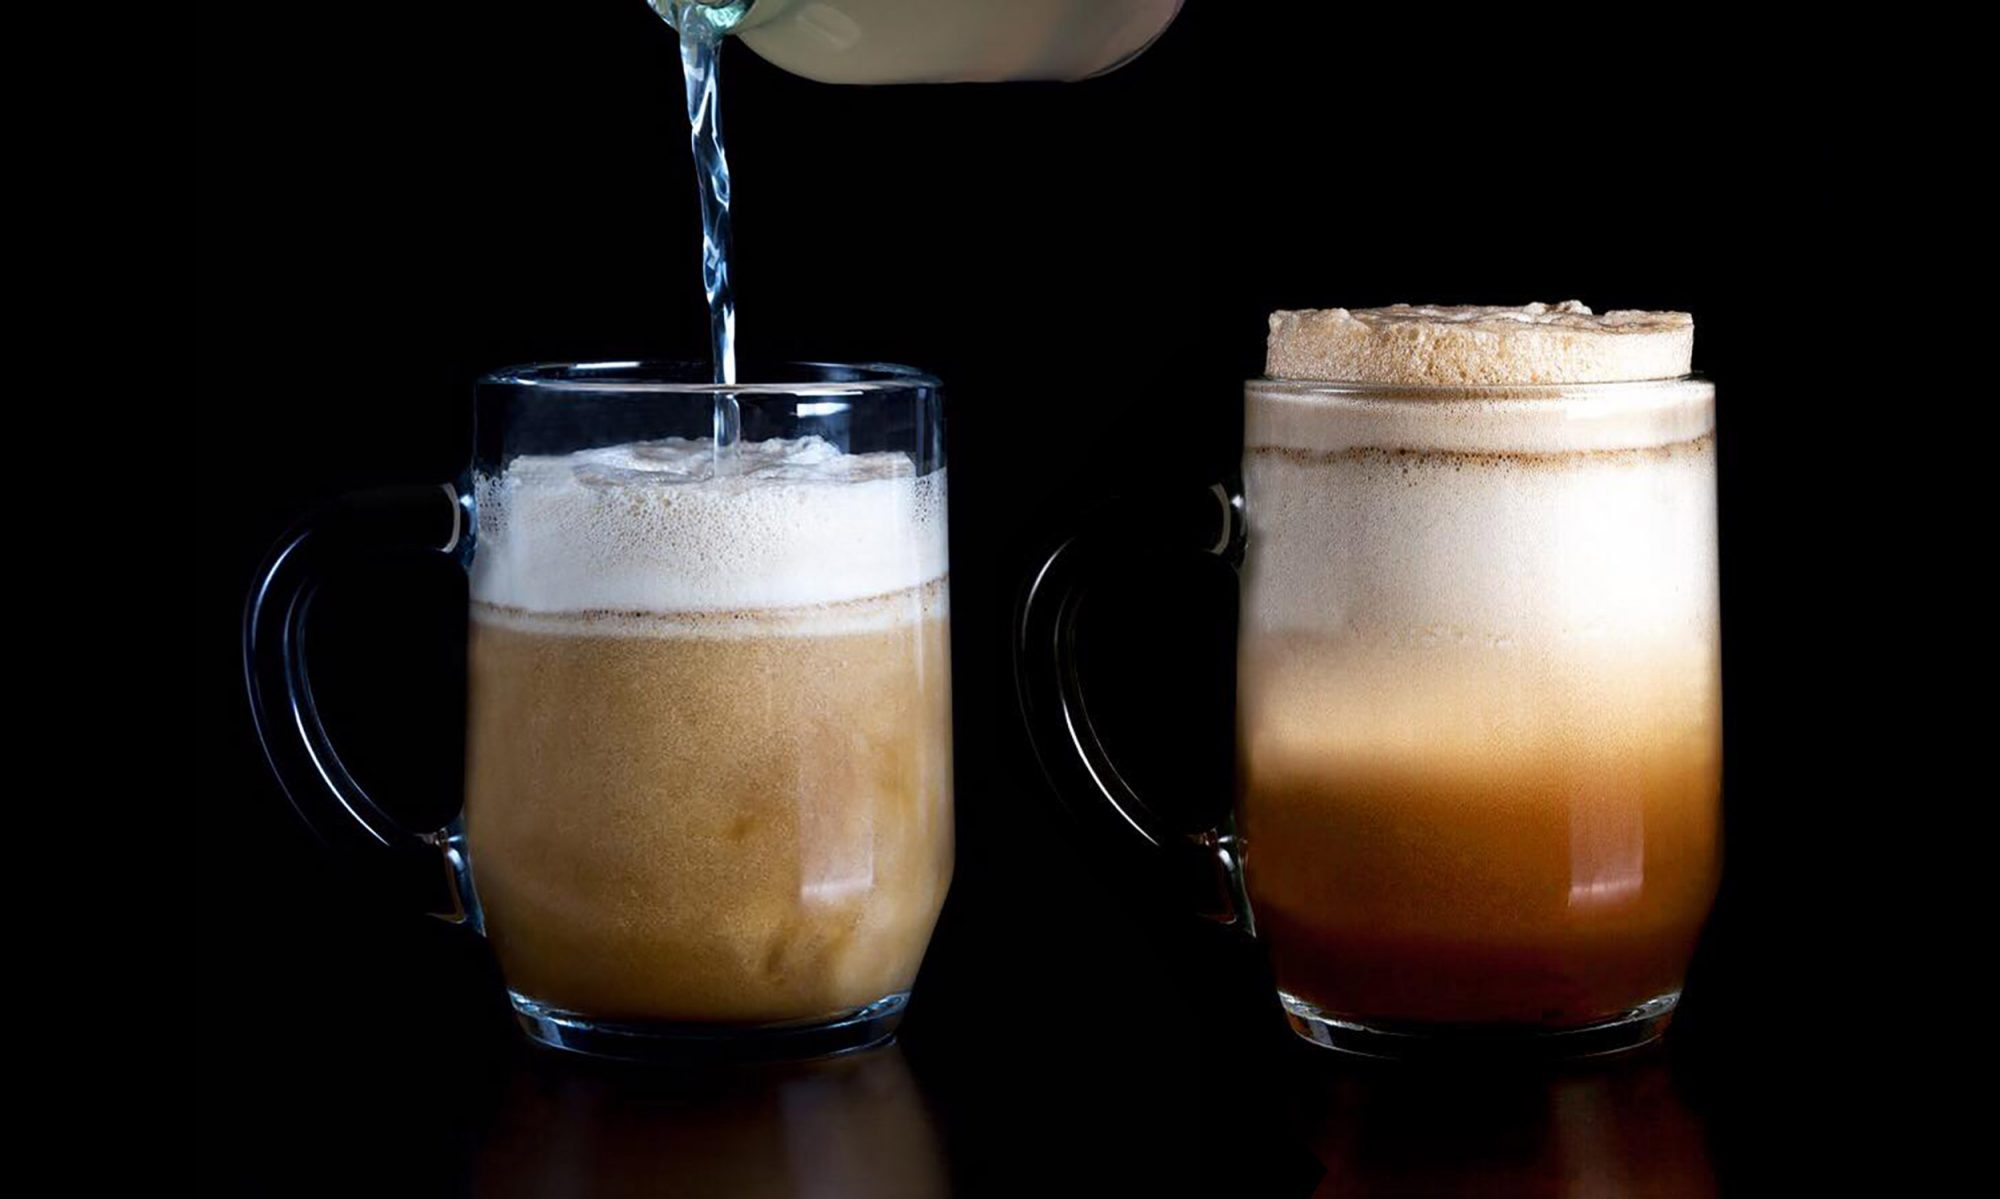 EC: This Cold Brew Coffee Cocktail Is So Good It Needs Two Glasses